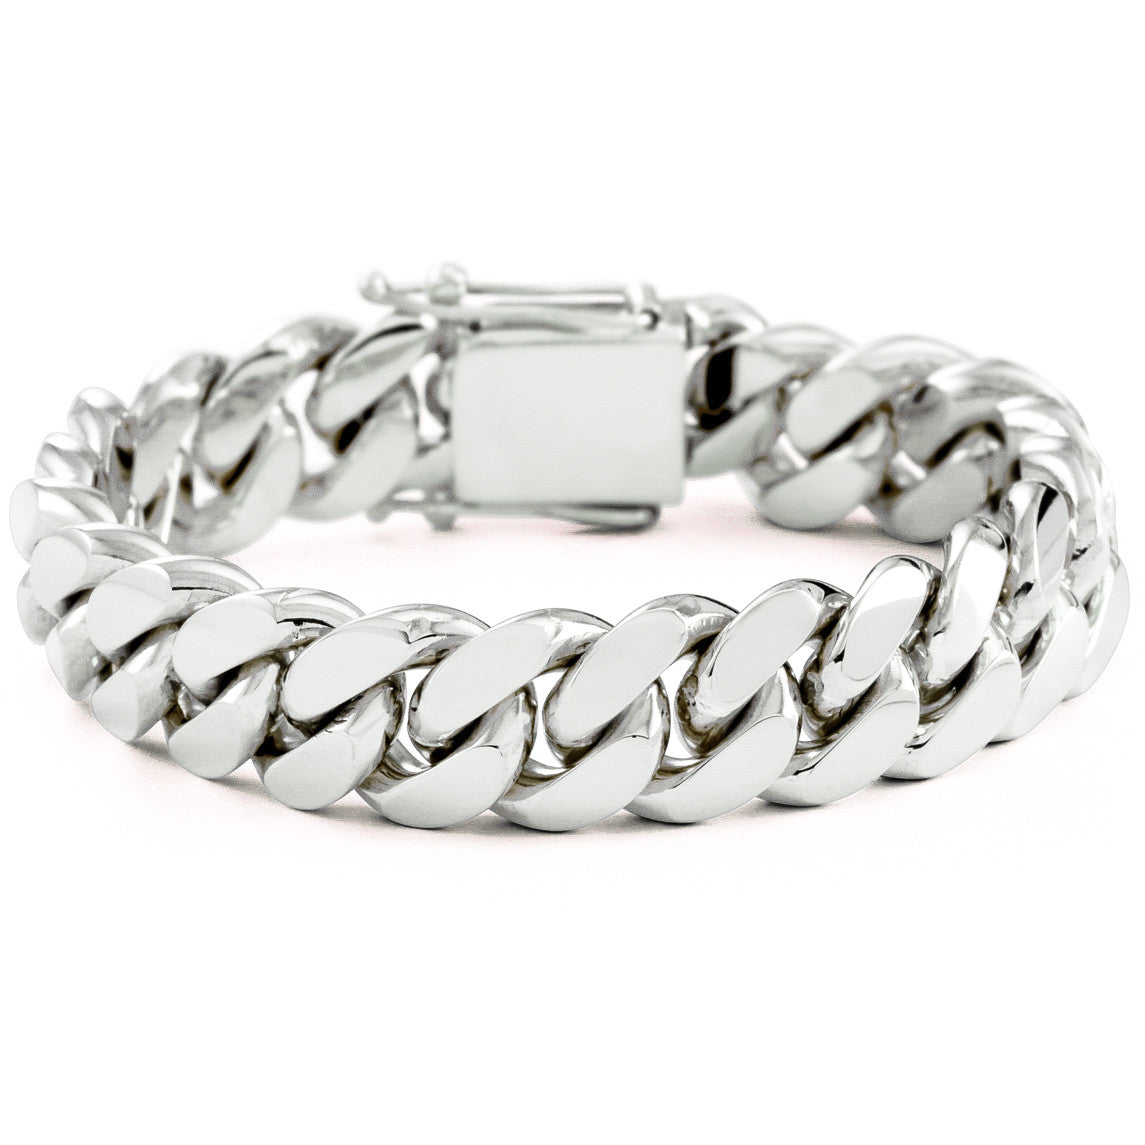 Silver Miami Cuban Link Bracelet With Box Clasp 16mm